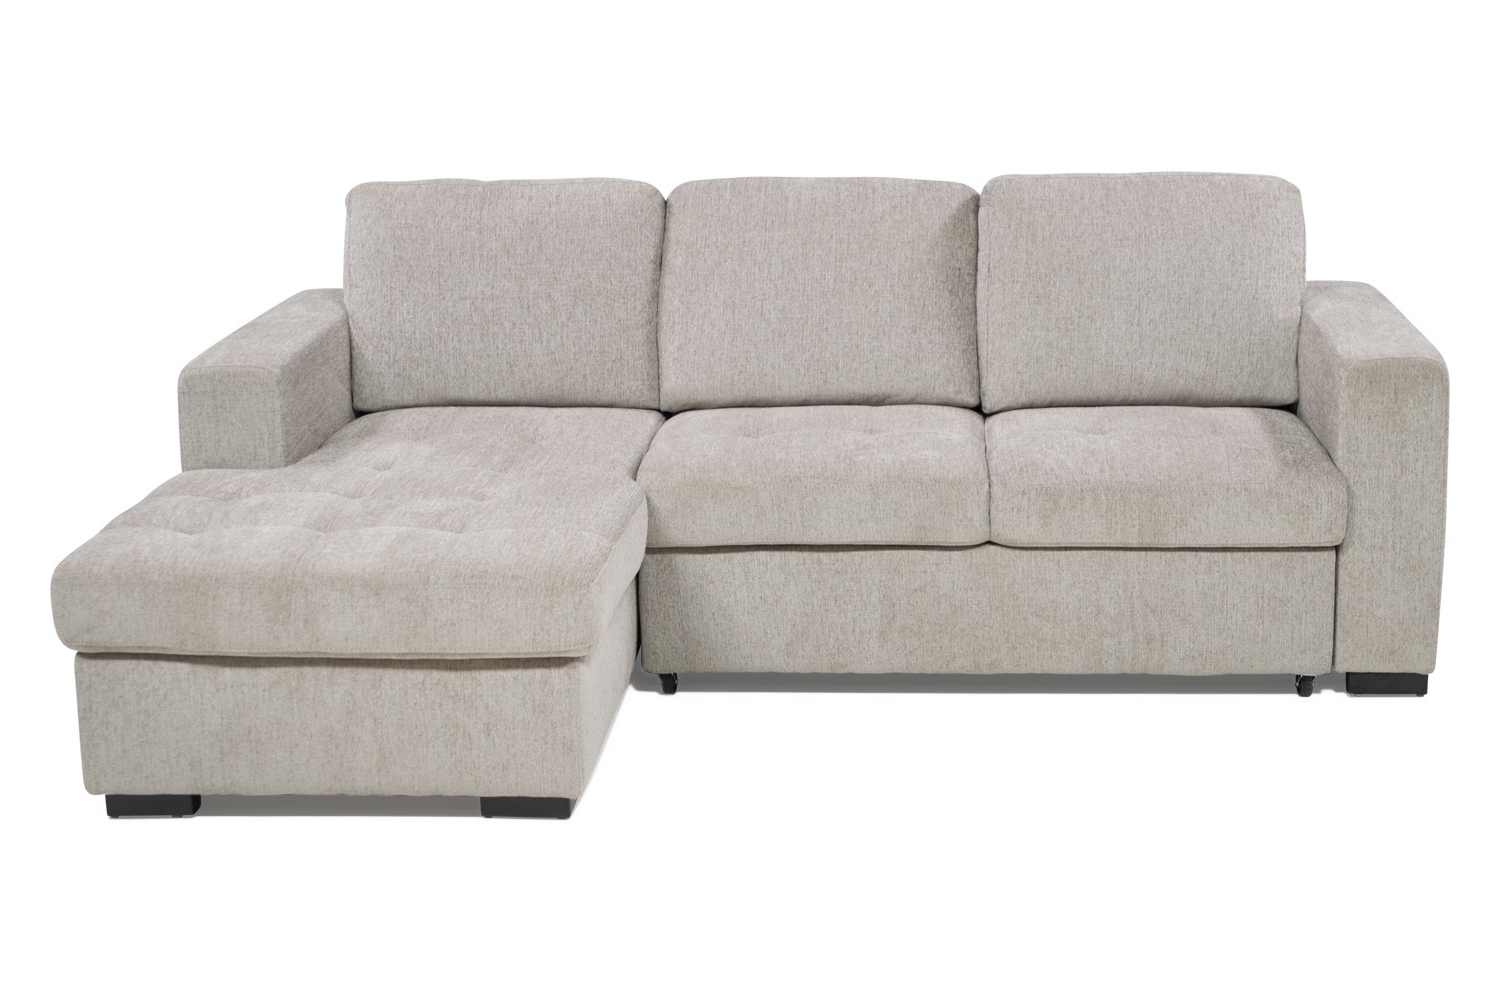 Current Everett Wa Sectional Sofas Pertaining To Living Room Furniture (View 10 of 15)